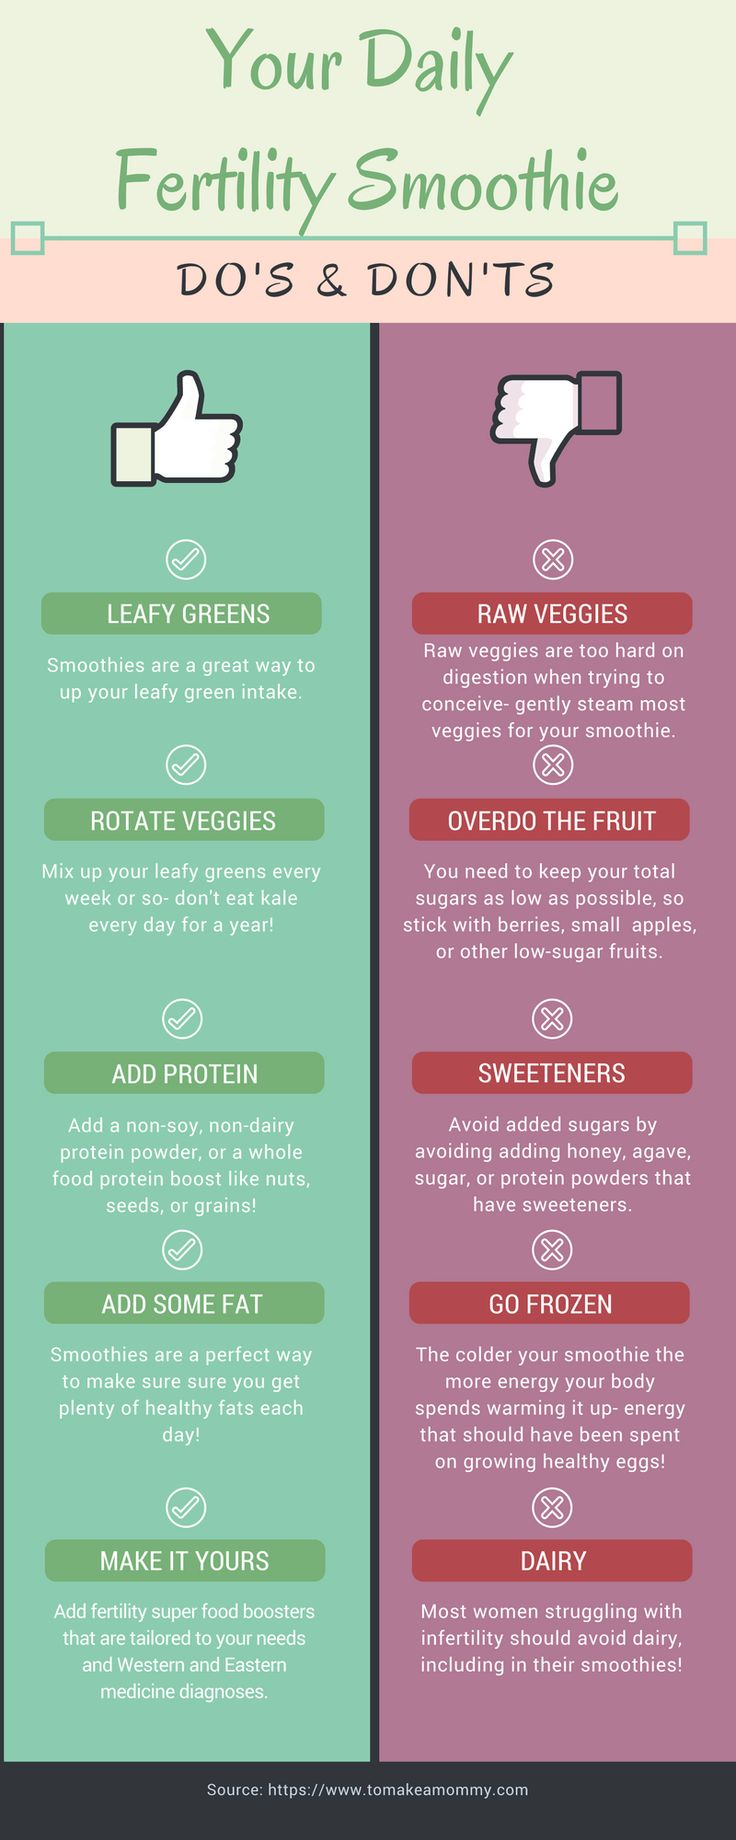 The best Do's and Don'ts for your daily fertility smoothie!